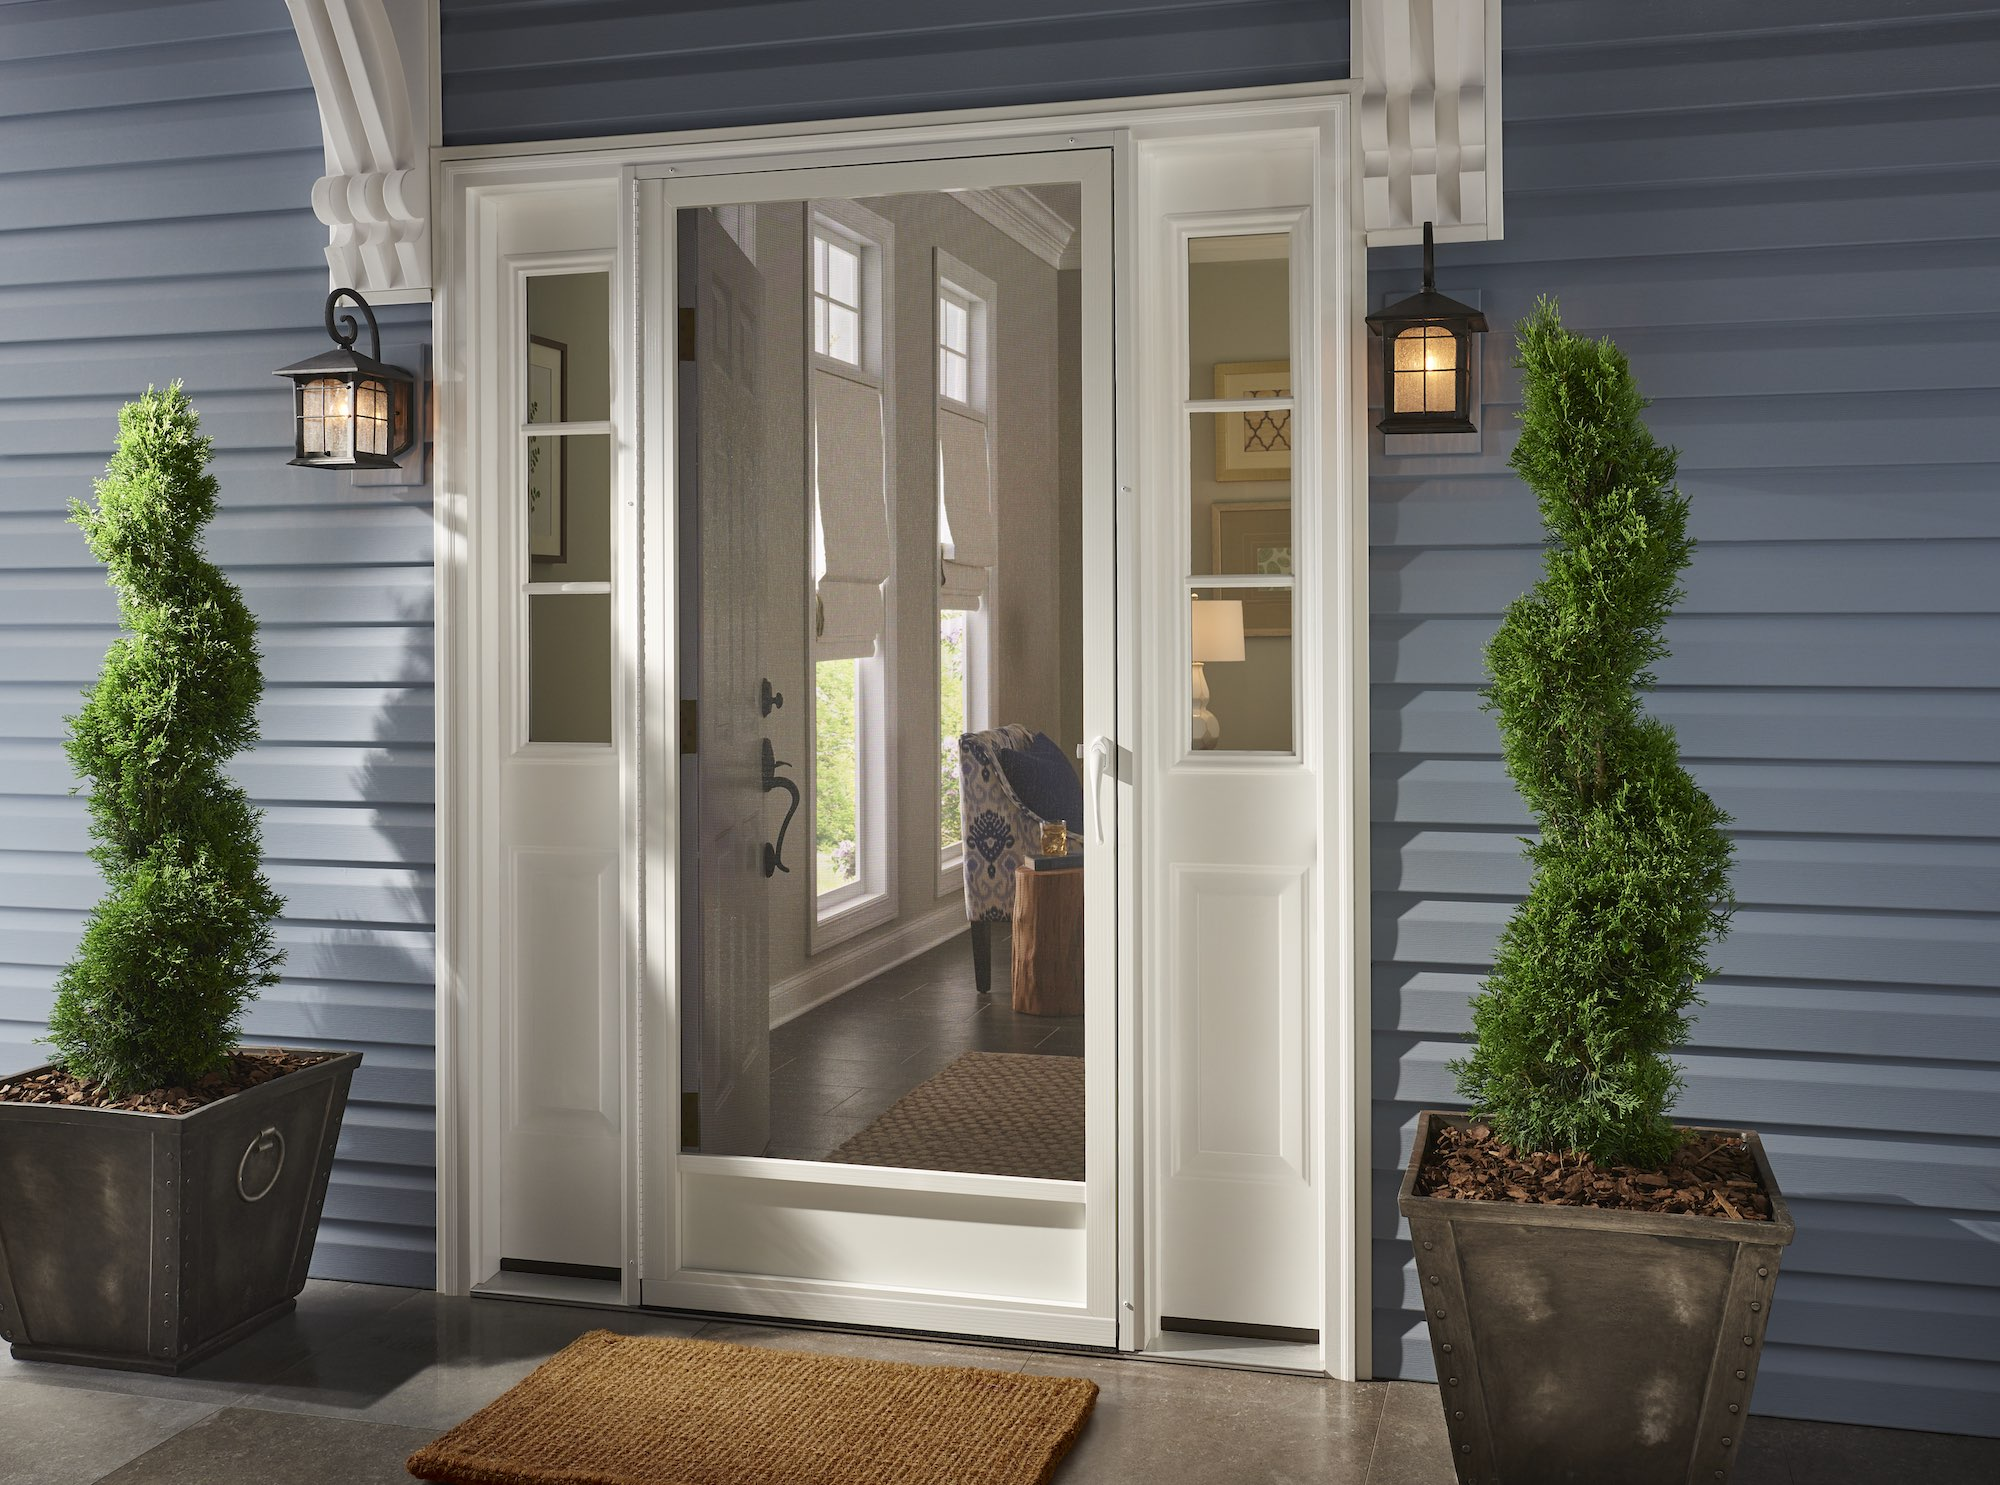 Entry Screen Doors Gallery & Aluminum Screen Doors - Best Screen Doors - Frontu2026 | PCA Products